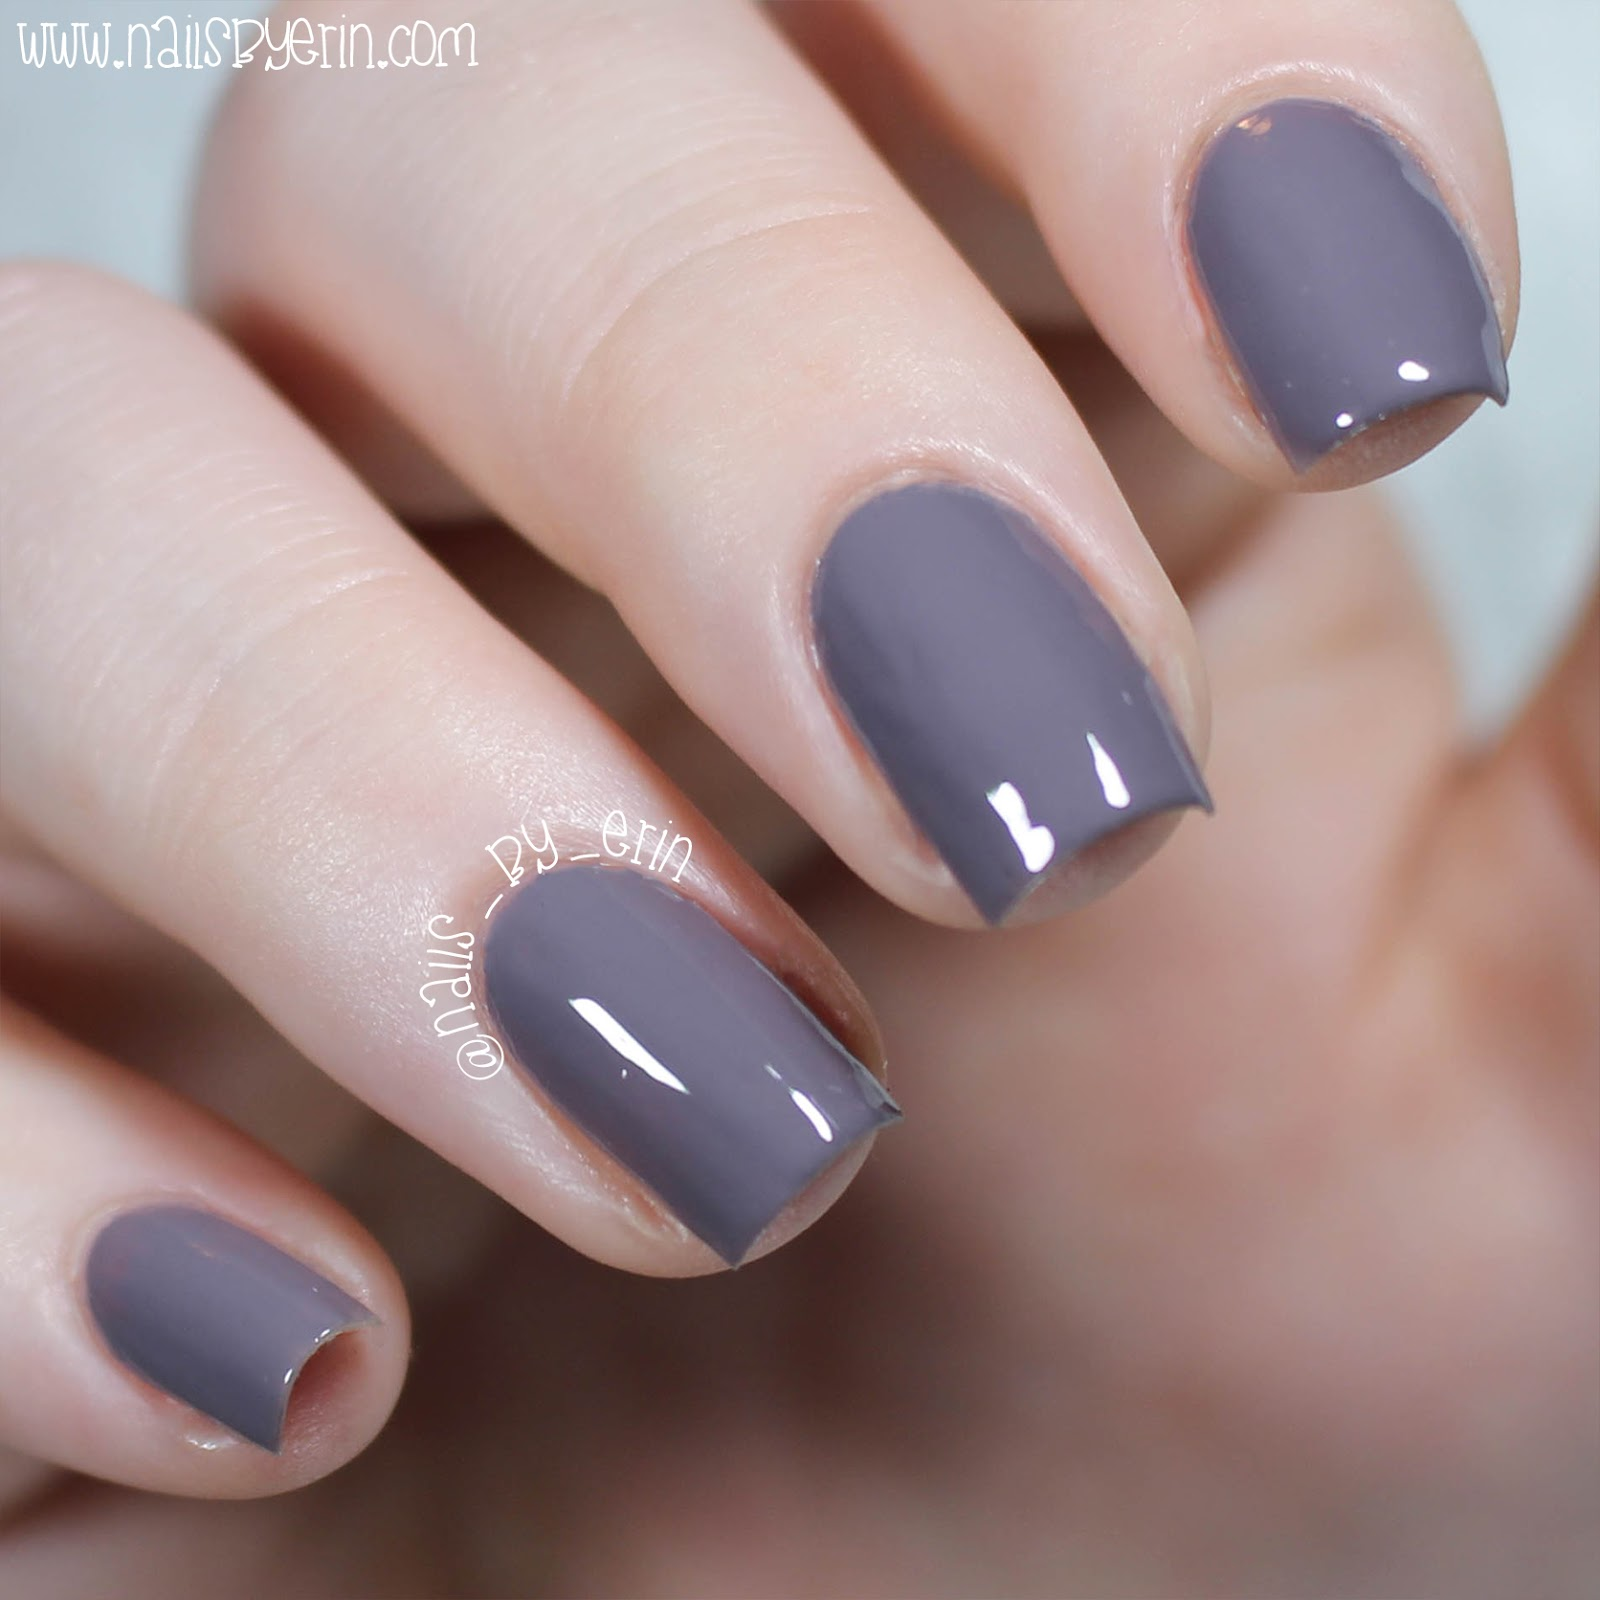 NailsByErin: Smith and Cult \